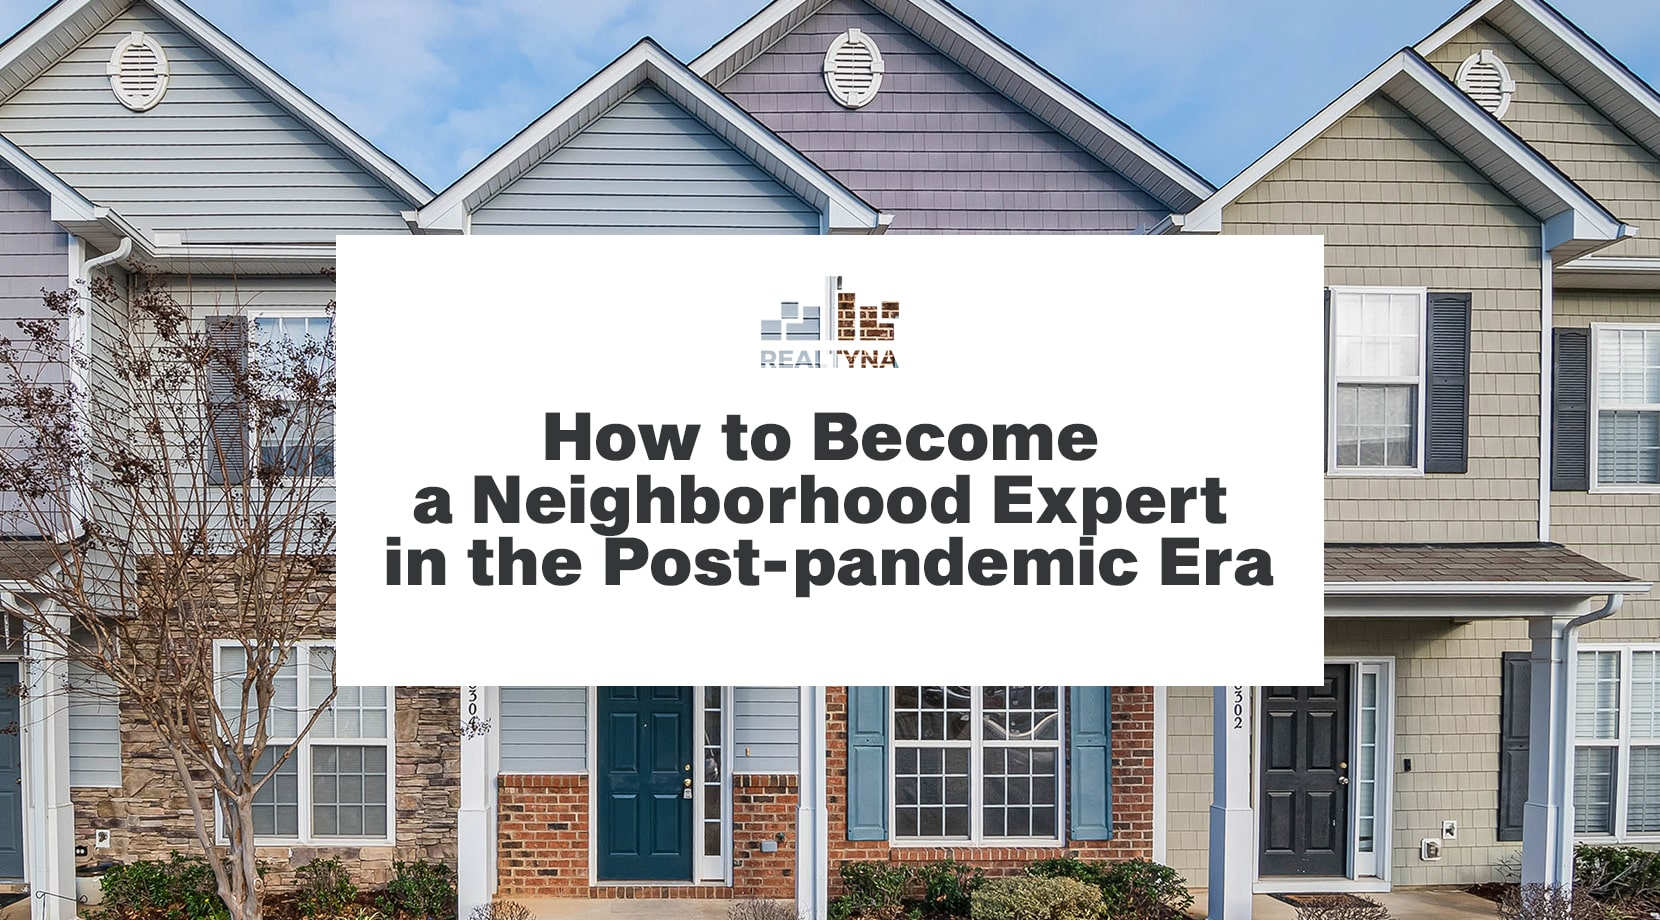 How to Become a Neighborhood Expert in the Post-Pandemic Era